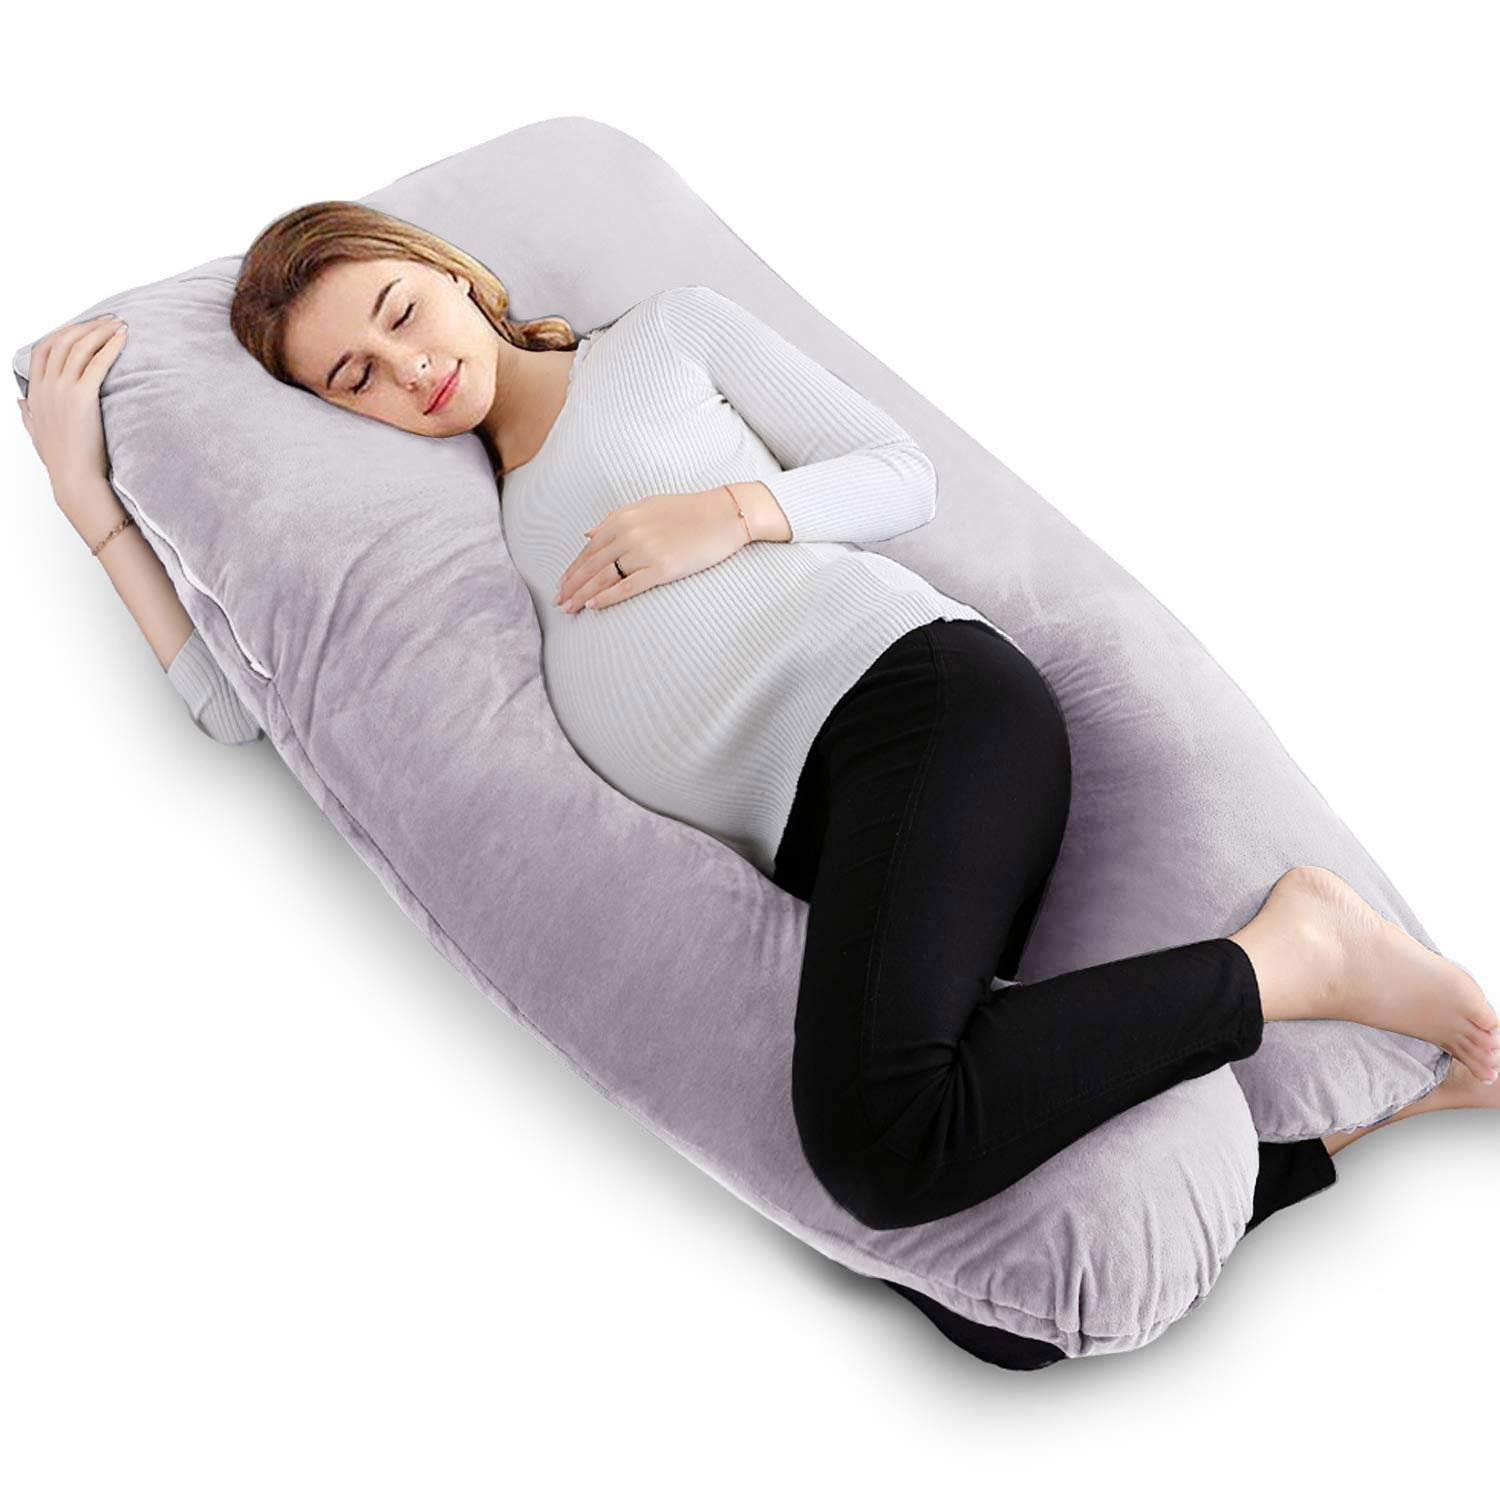 VECELO U-Shaped Pregnancy Full Body Maternity Pillow with Zipper Removable Cover, Body Pain Relief